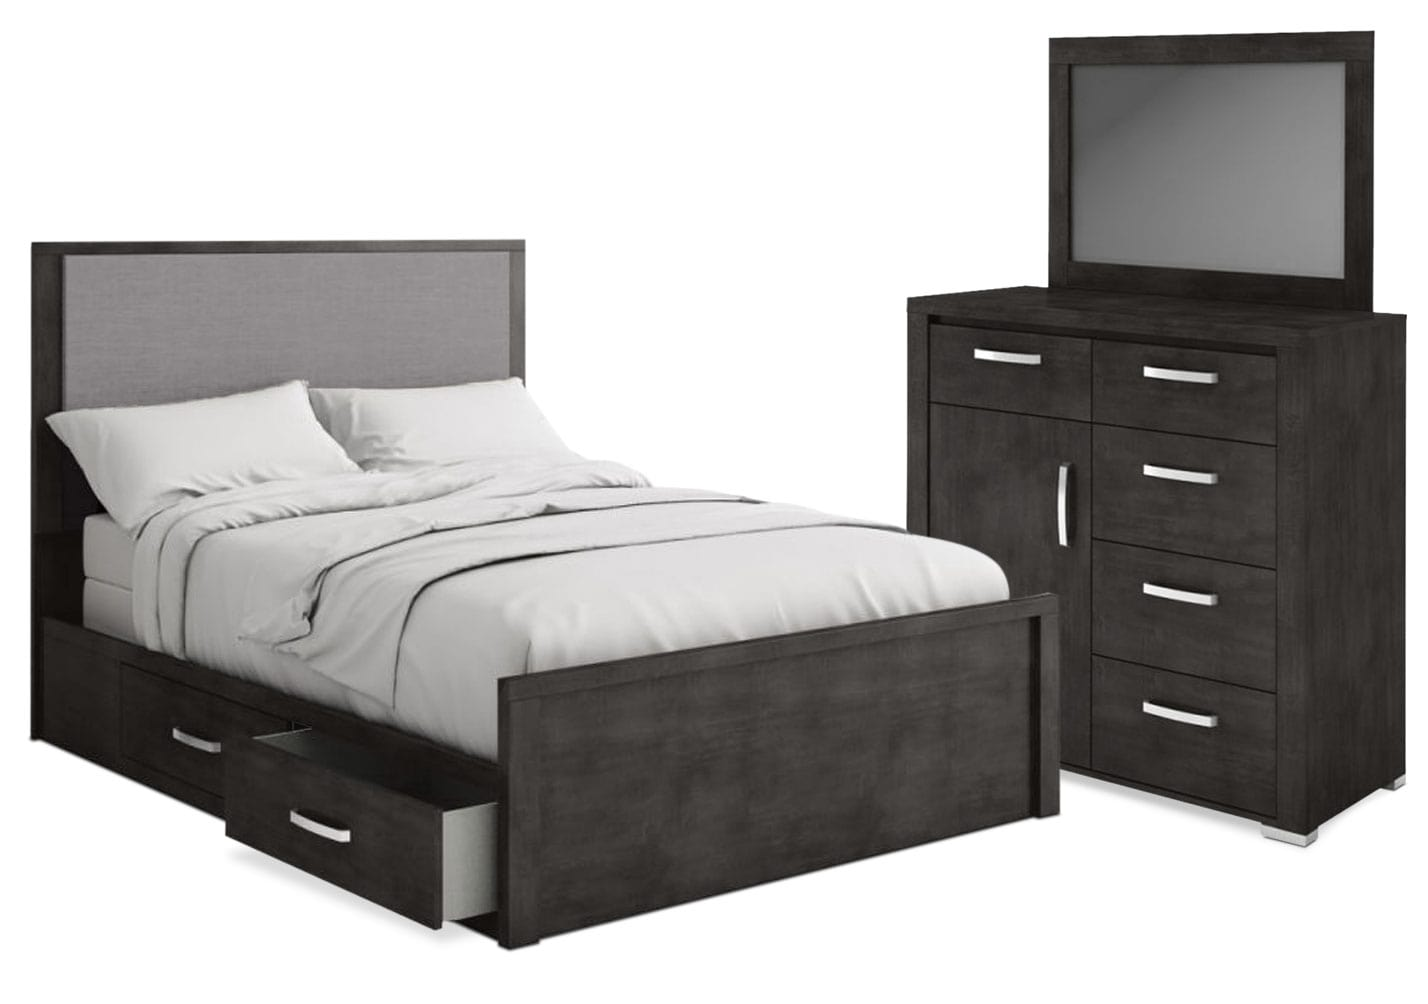 Monaco 5-Piece Queen Storage Bedroom Package – Anthracite Grey